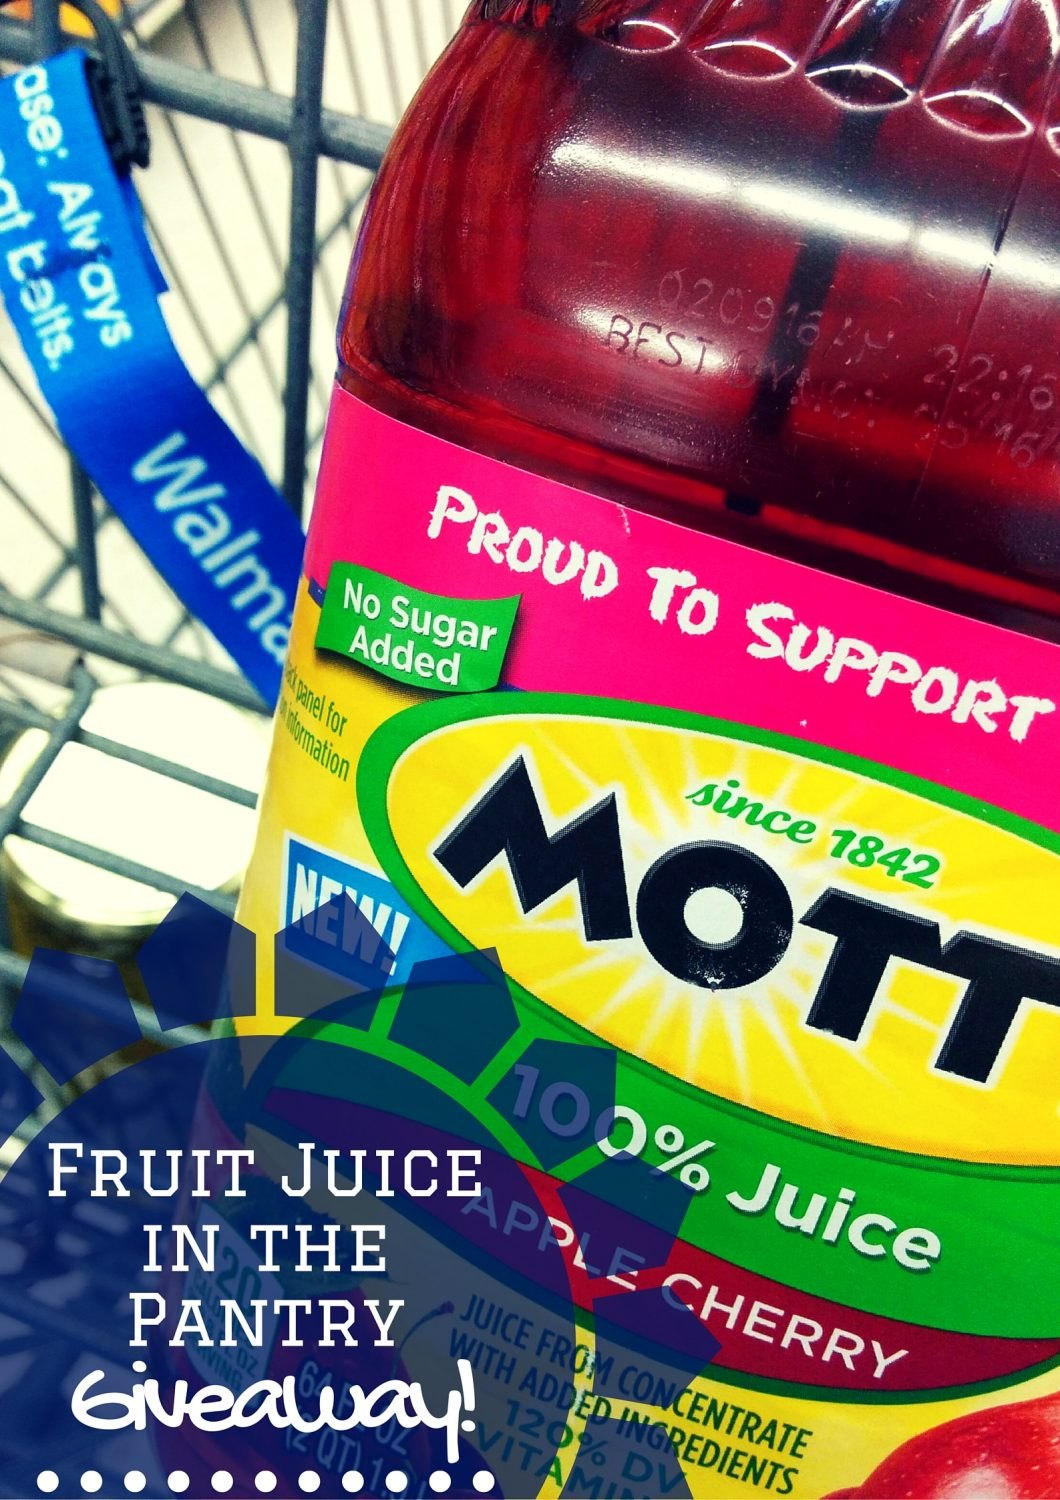 Mott's Fruit Juice giveaway